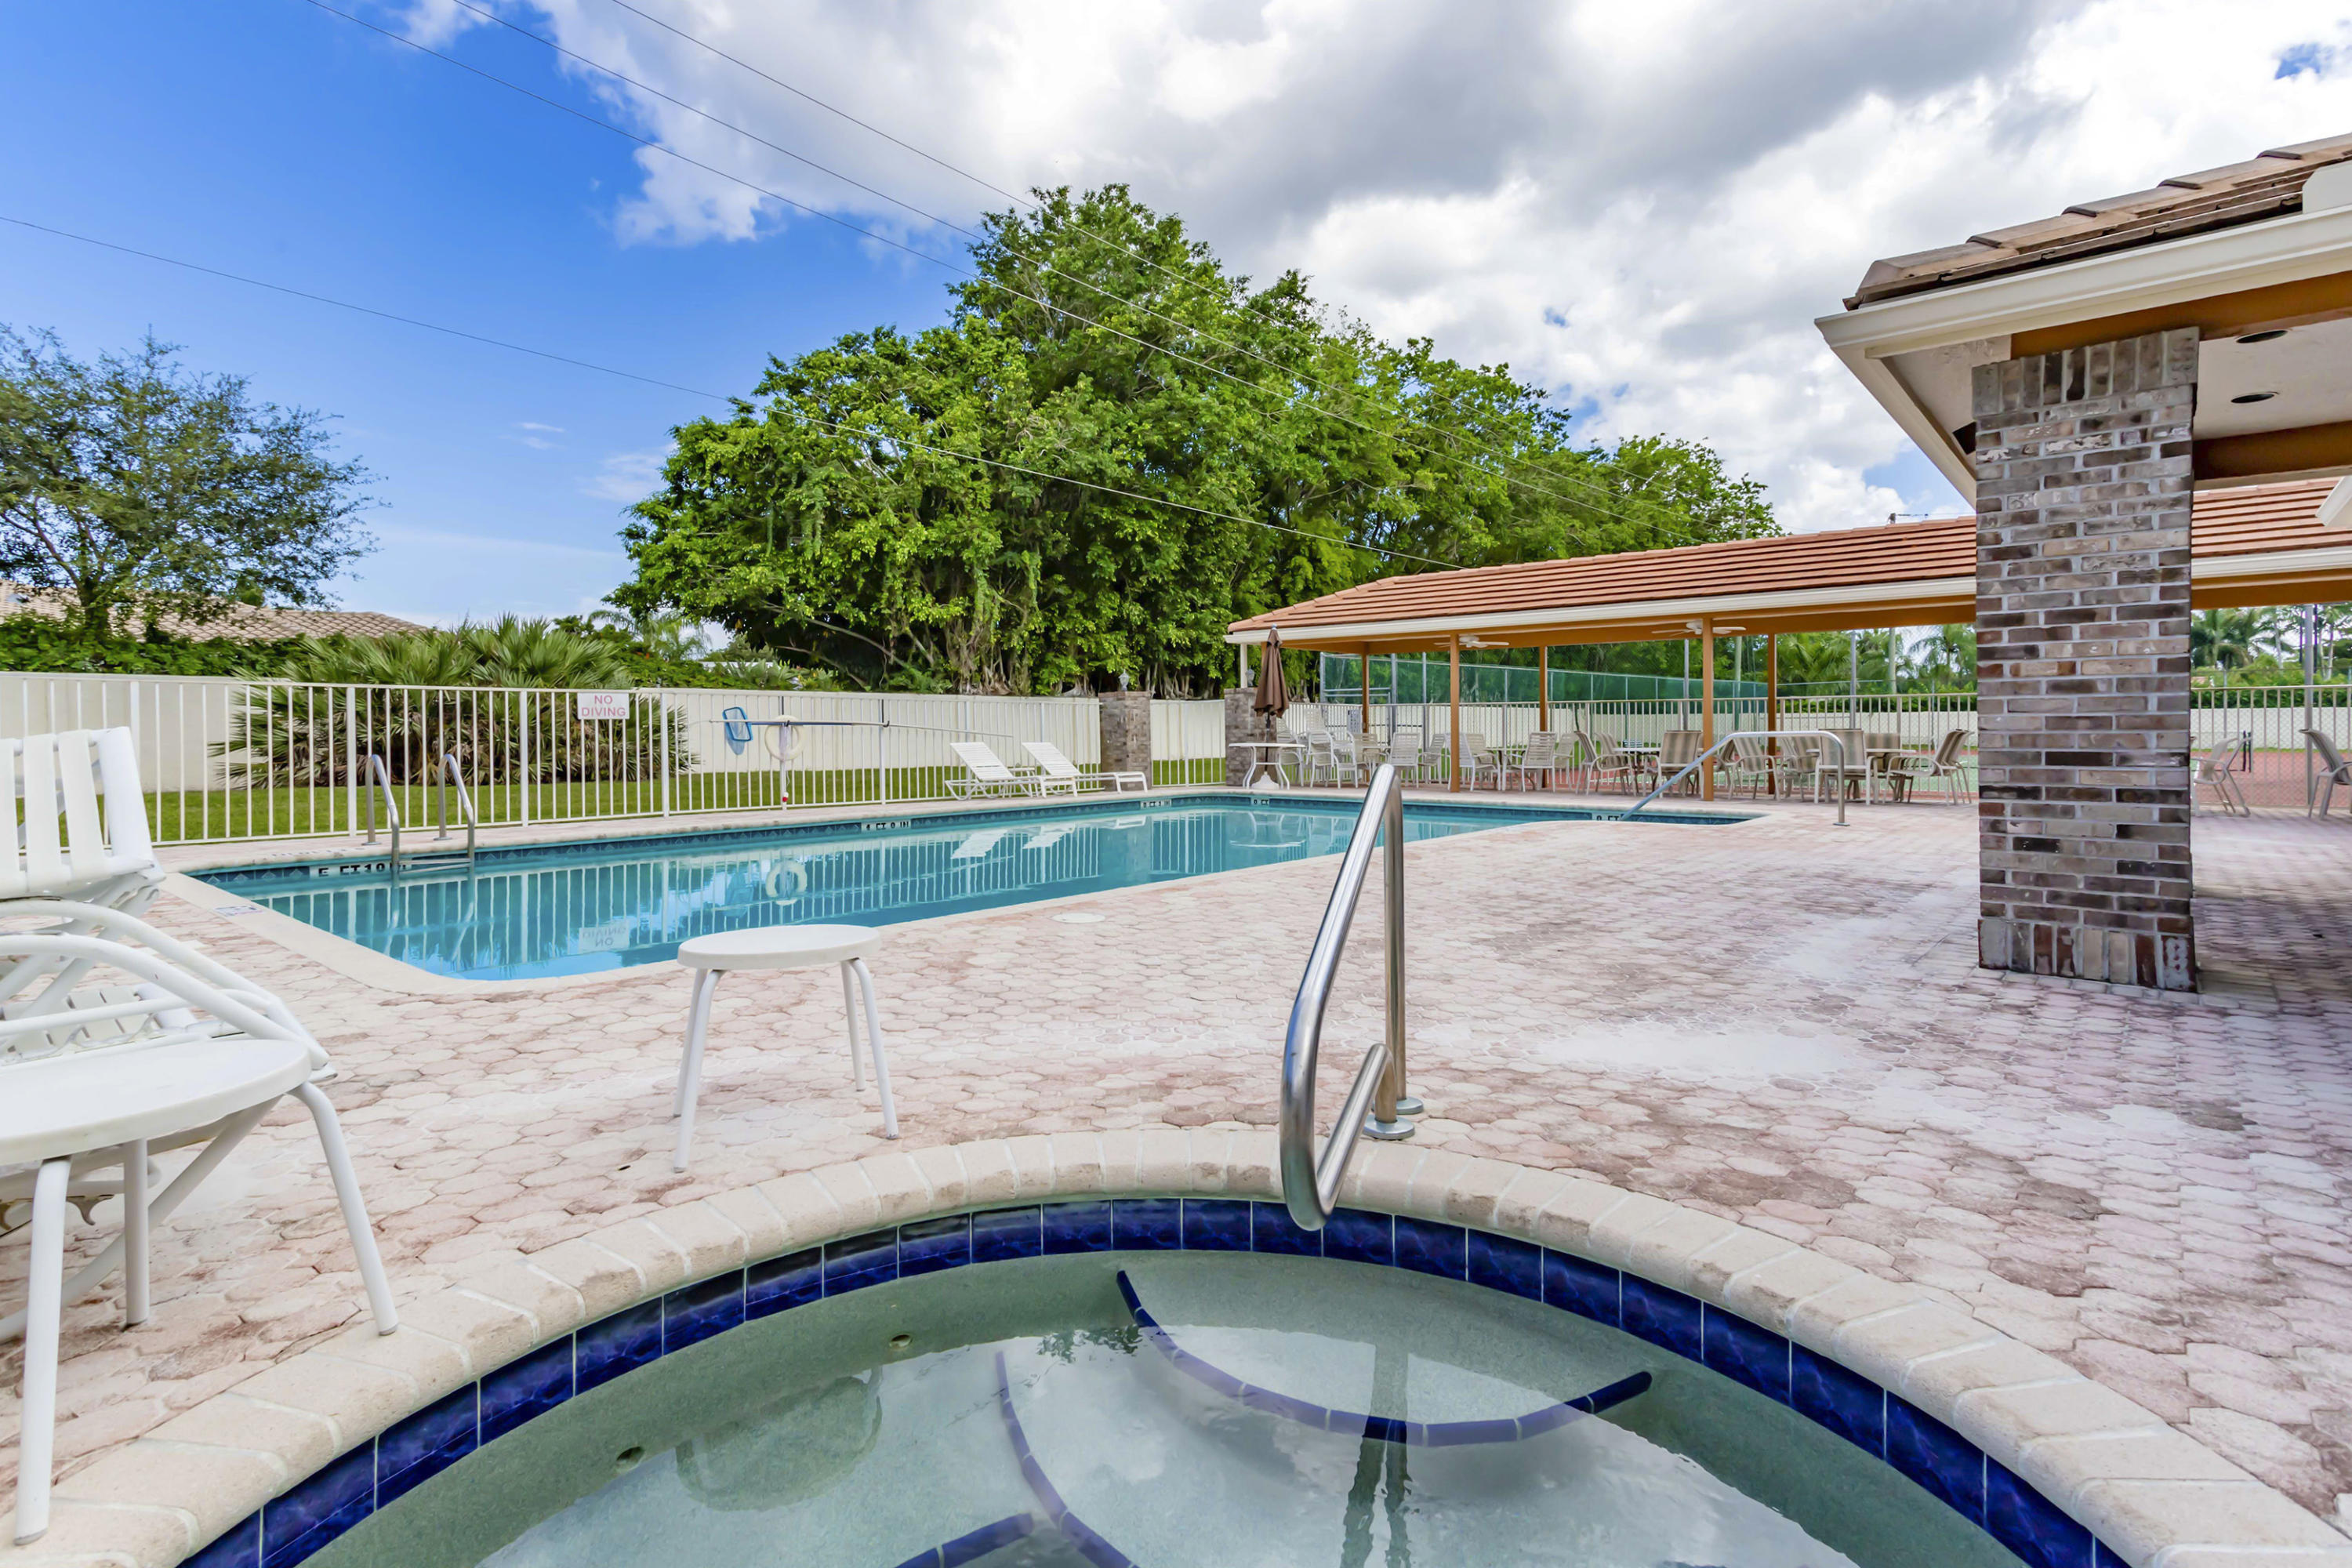 SHERWOOD FOREST DELRAY BEACH REAL ESTATE